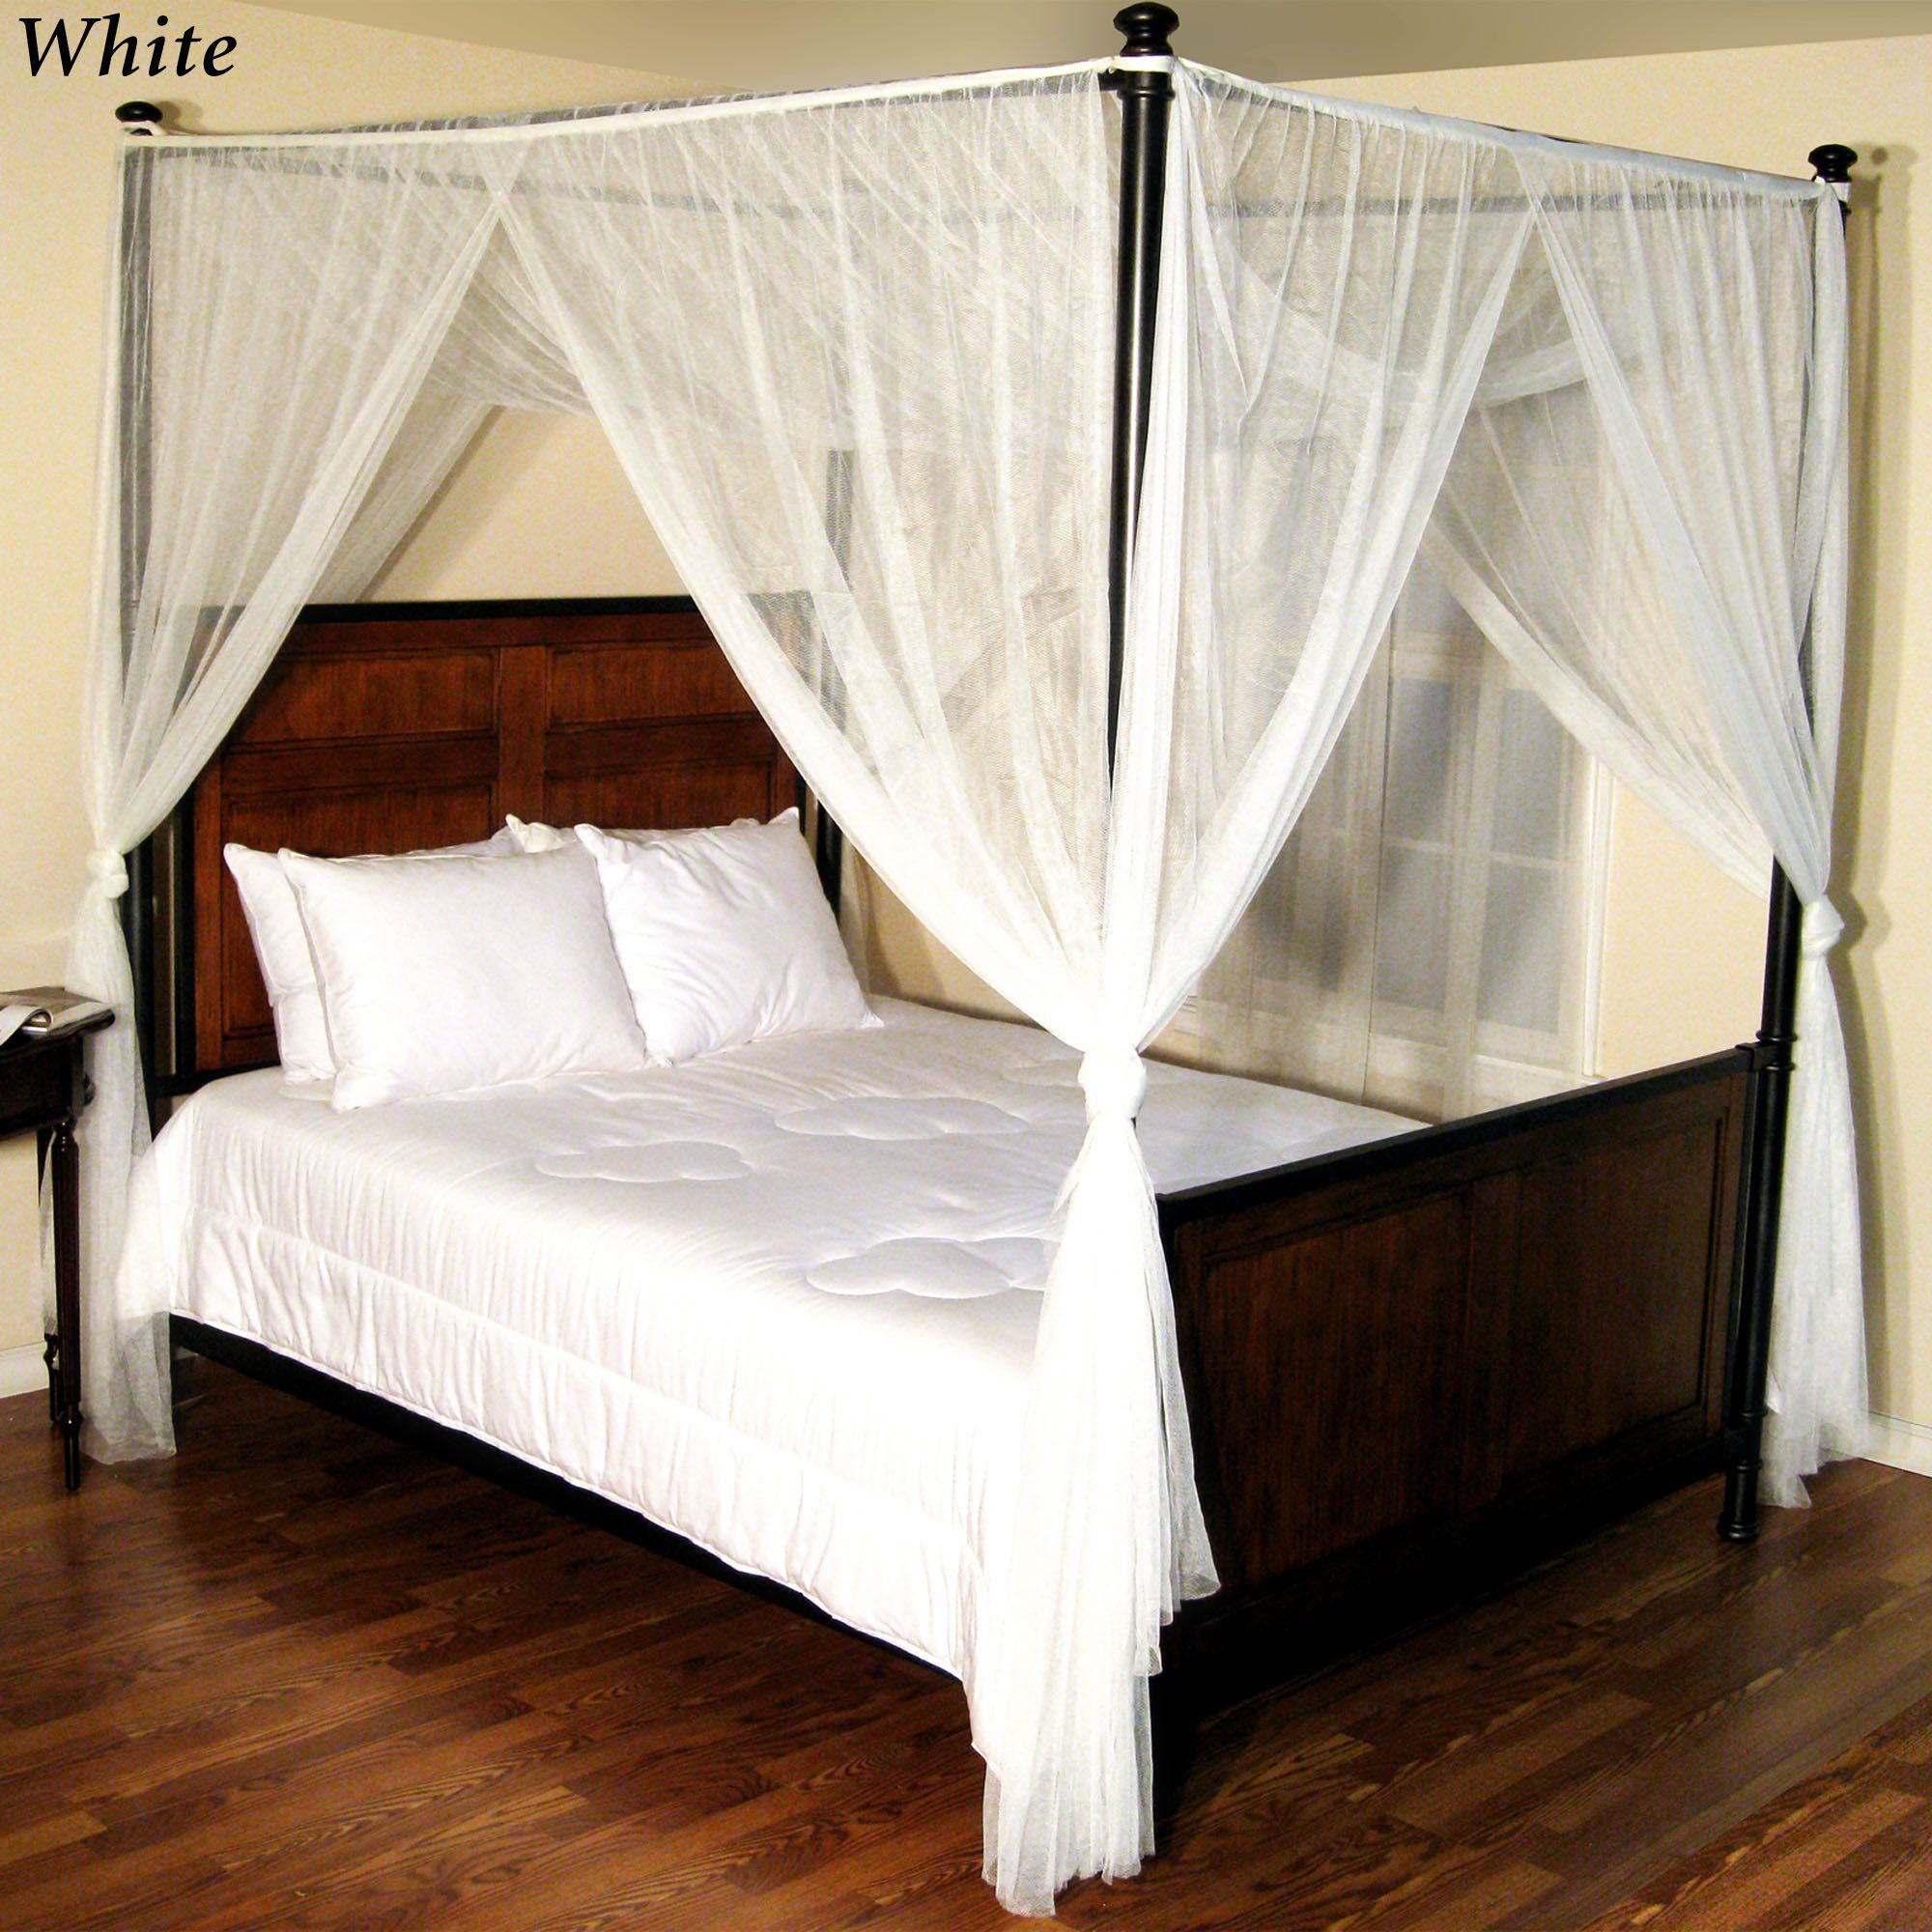 - Palace 4-Poster Bed Canopy 4 Poster Bed Canopy, Canopy Bed